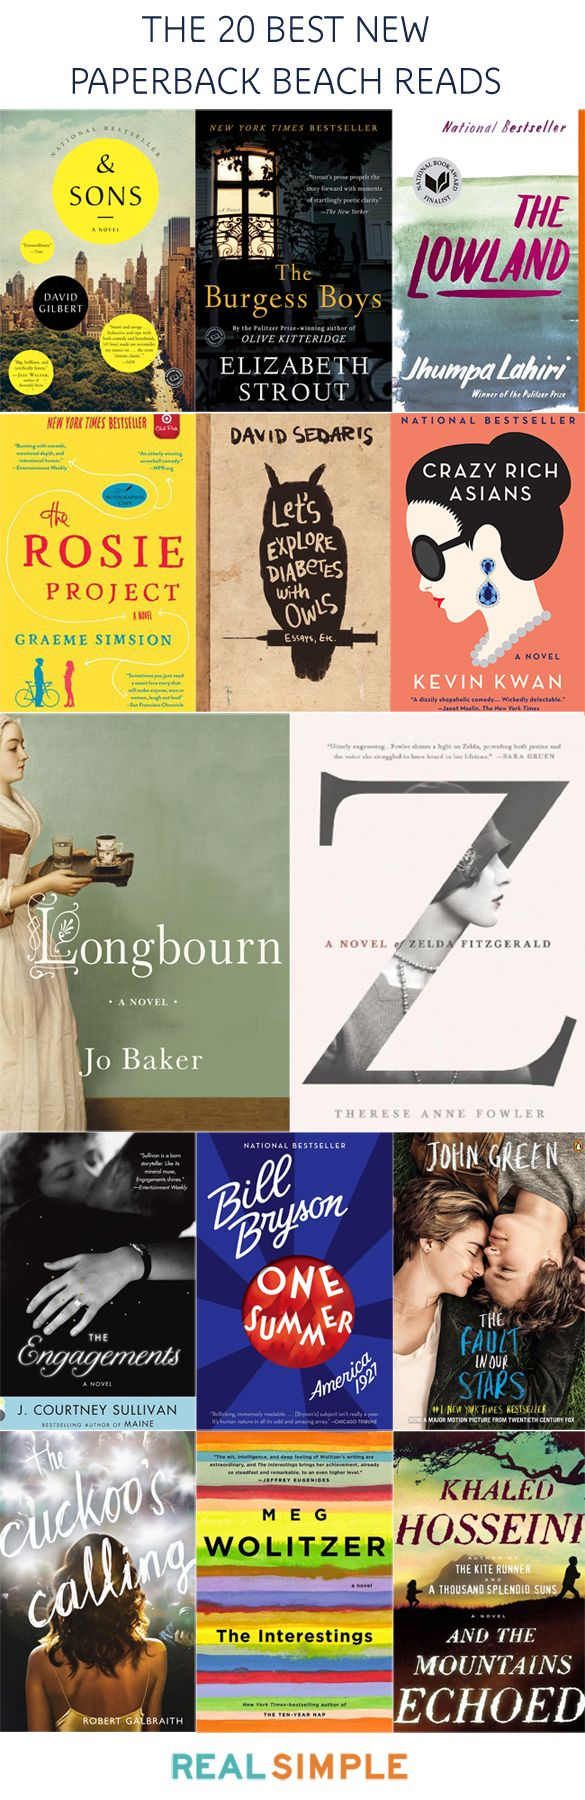 20 best new paperback beach reads for 2014 | real simple